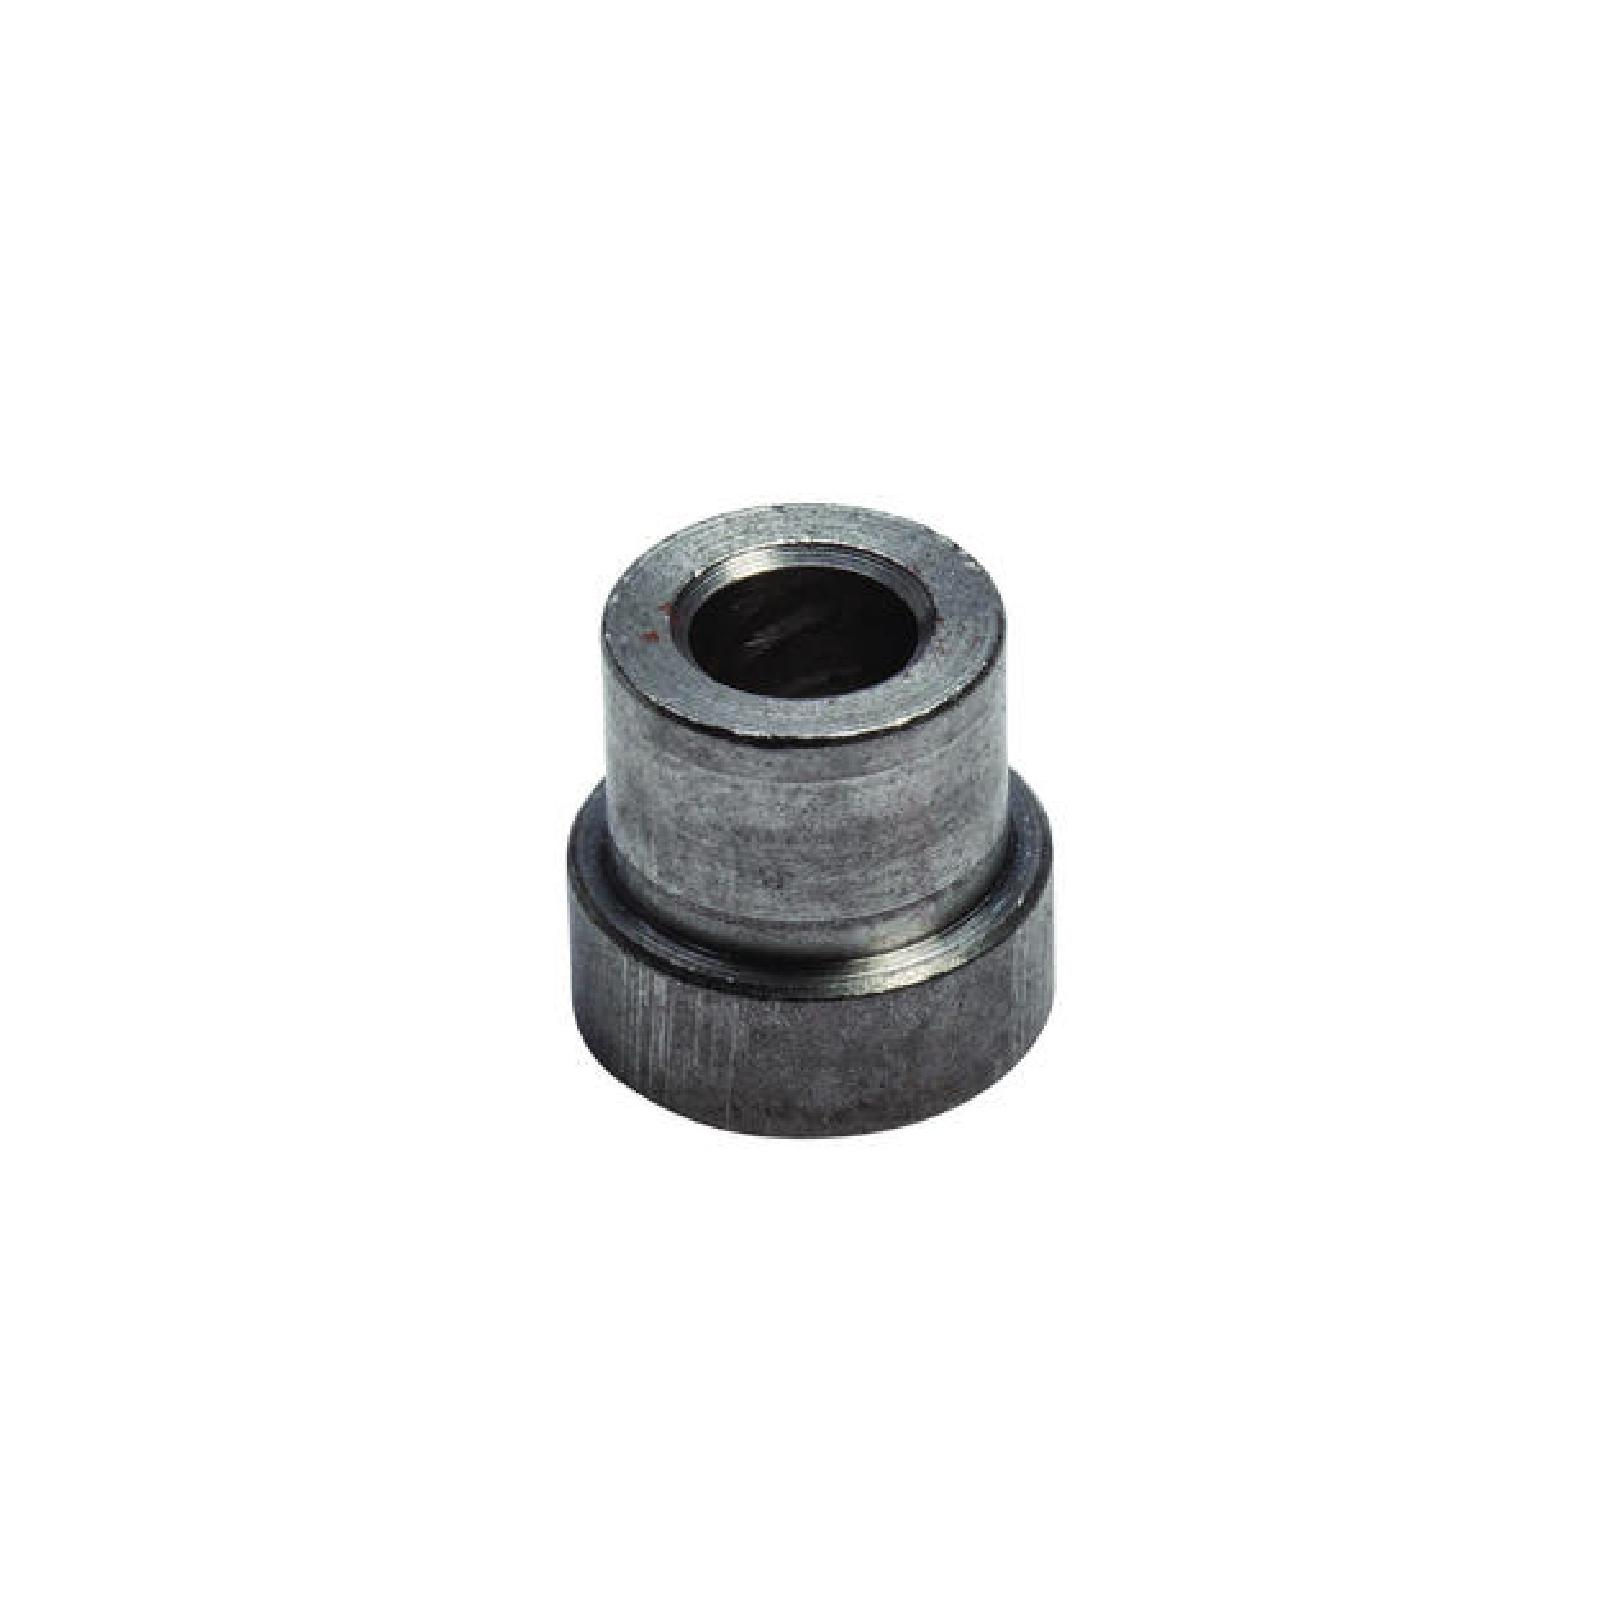 REDUCER BUSHING 3/8IN OFF part# 78-103 by Oregon